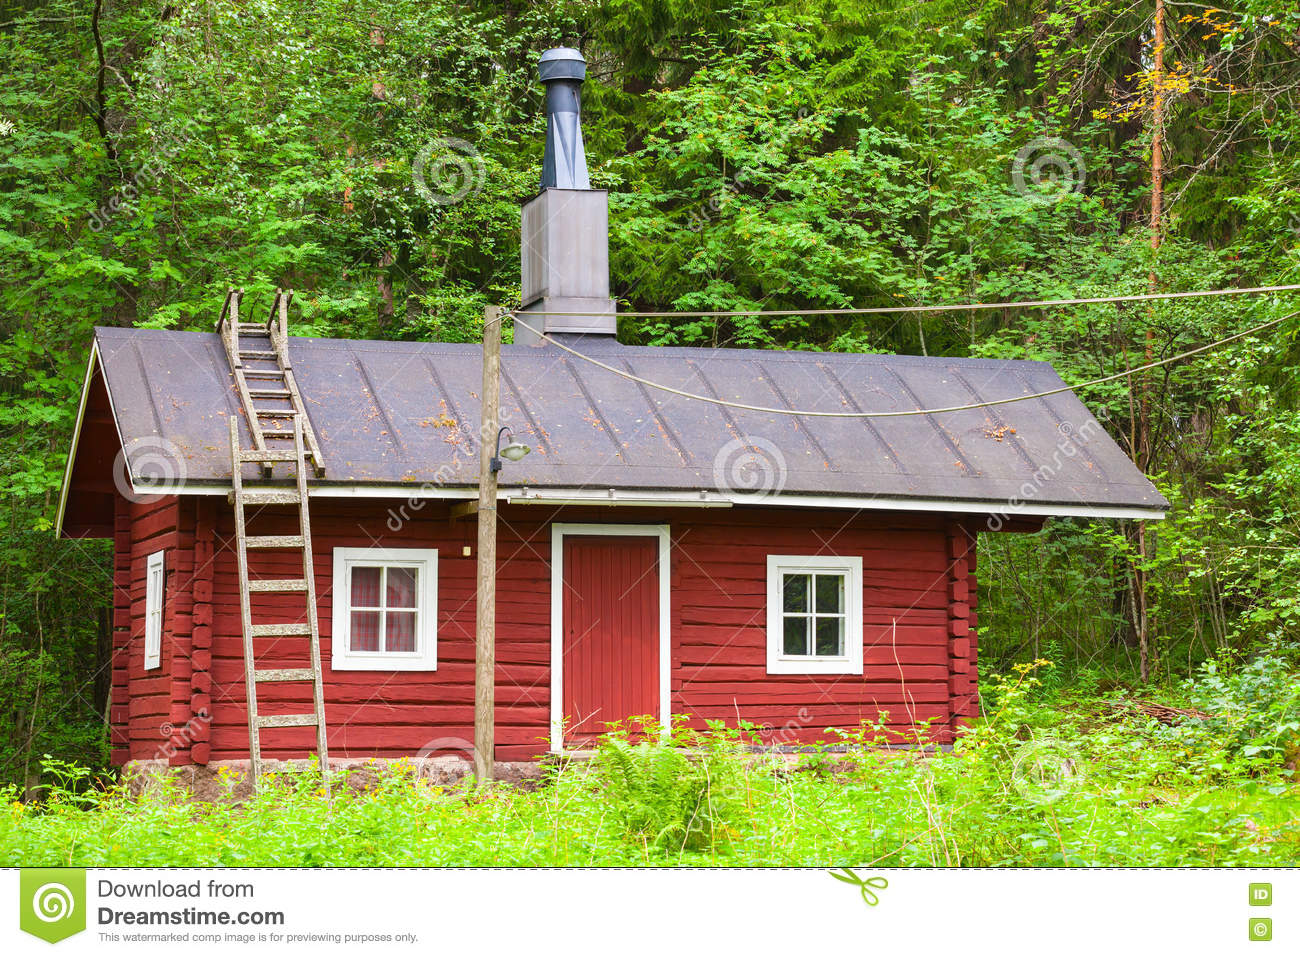 Maison en bois rouge scandinave traditionnelle photo stock for Maisons scandinaves en bois